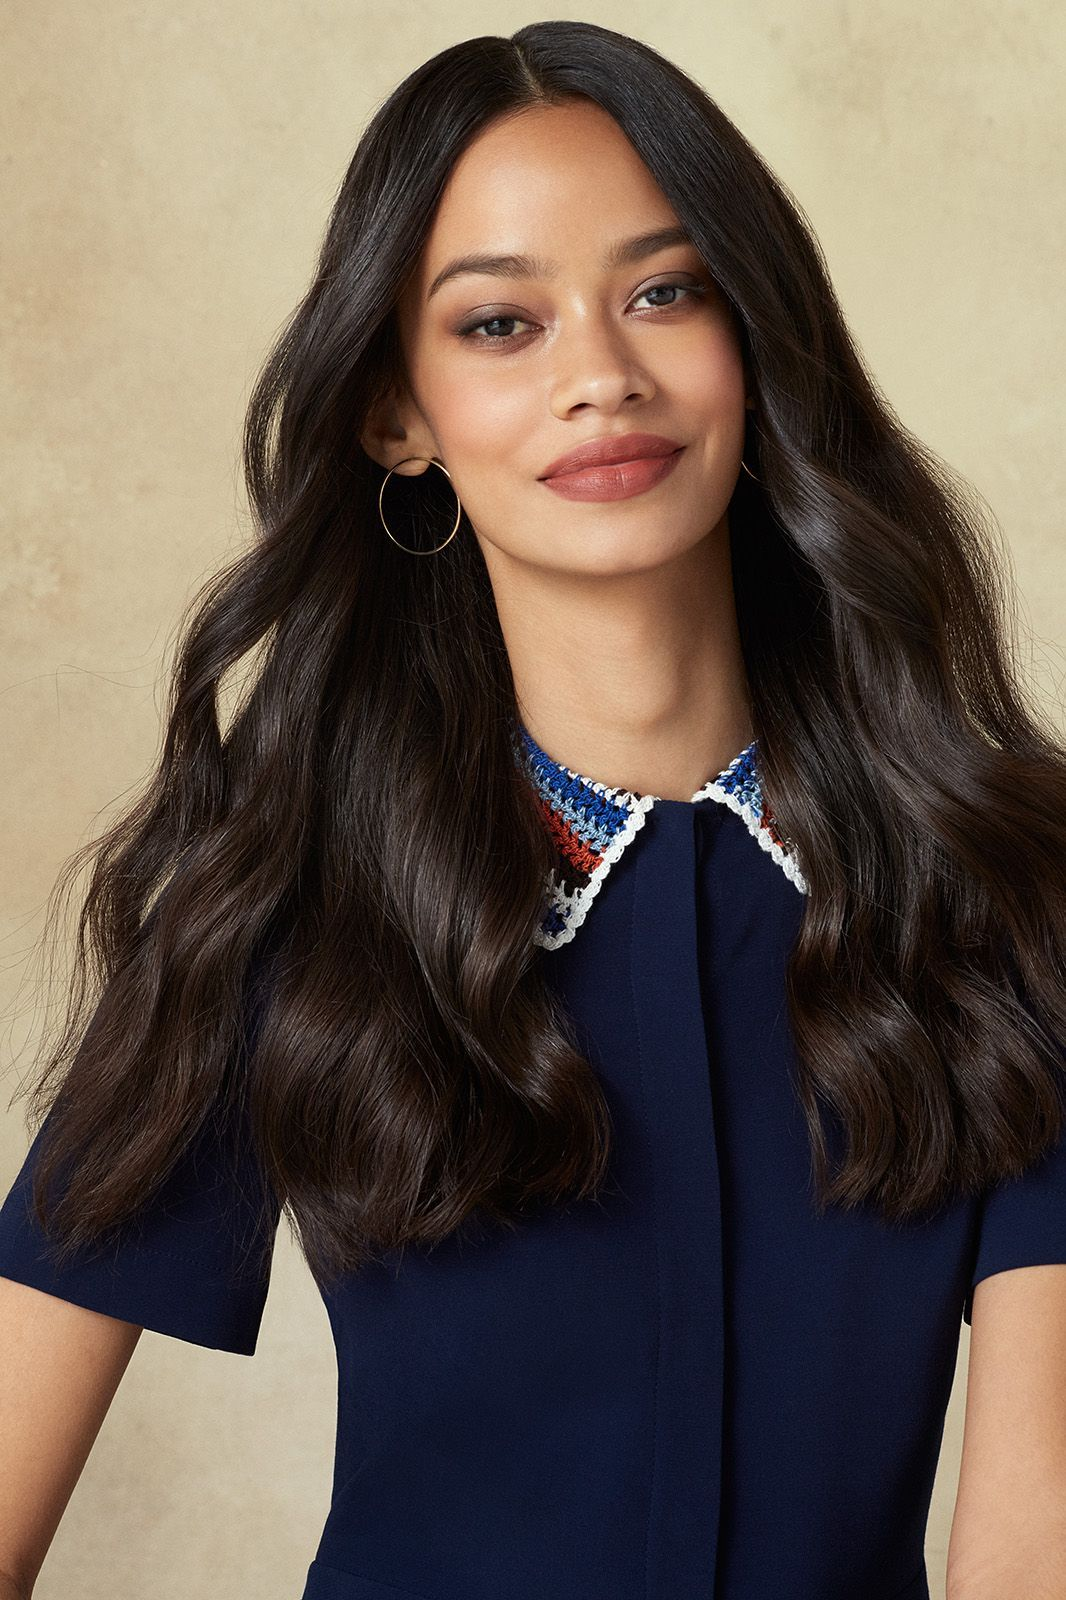 Professional hairstyles at home easy diy hair professional 4 hairstyles you can actually do yourself refinery29 httprefinery29professional hairstyles at homeslide 12 finally take a natural bristle solutioingenieria Image collections